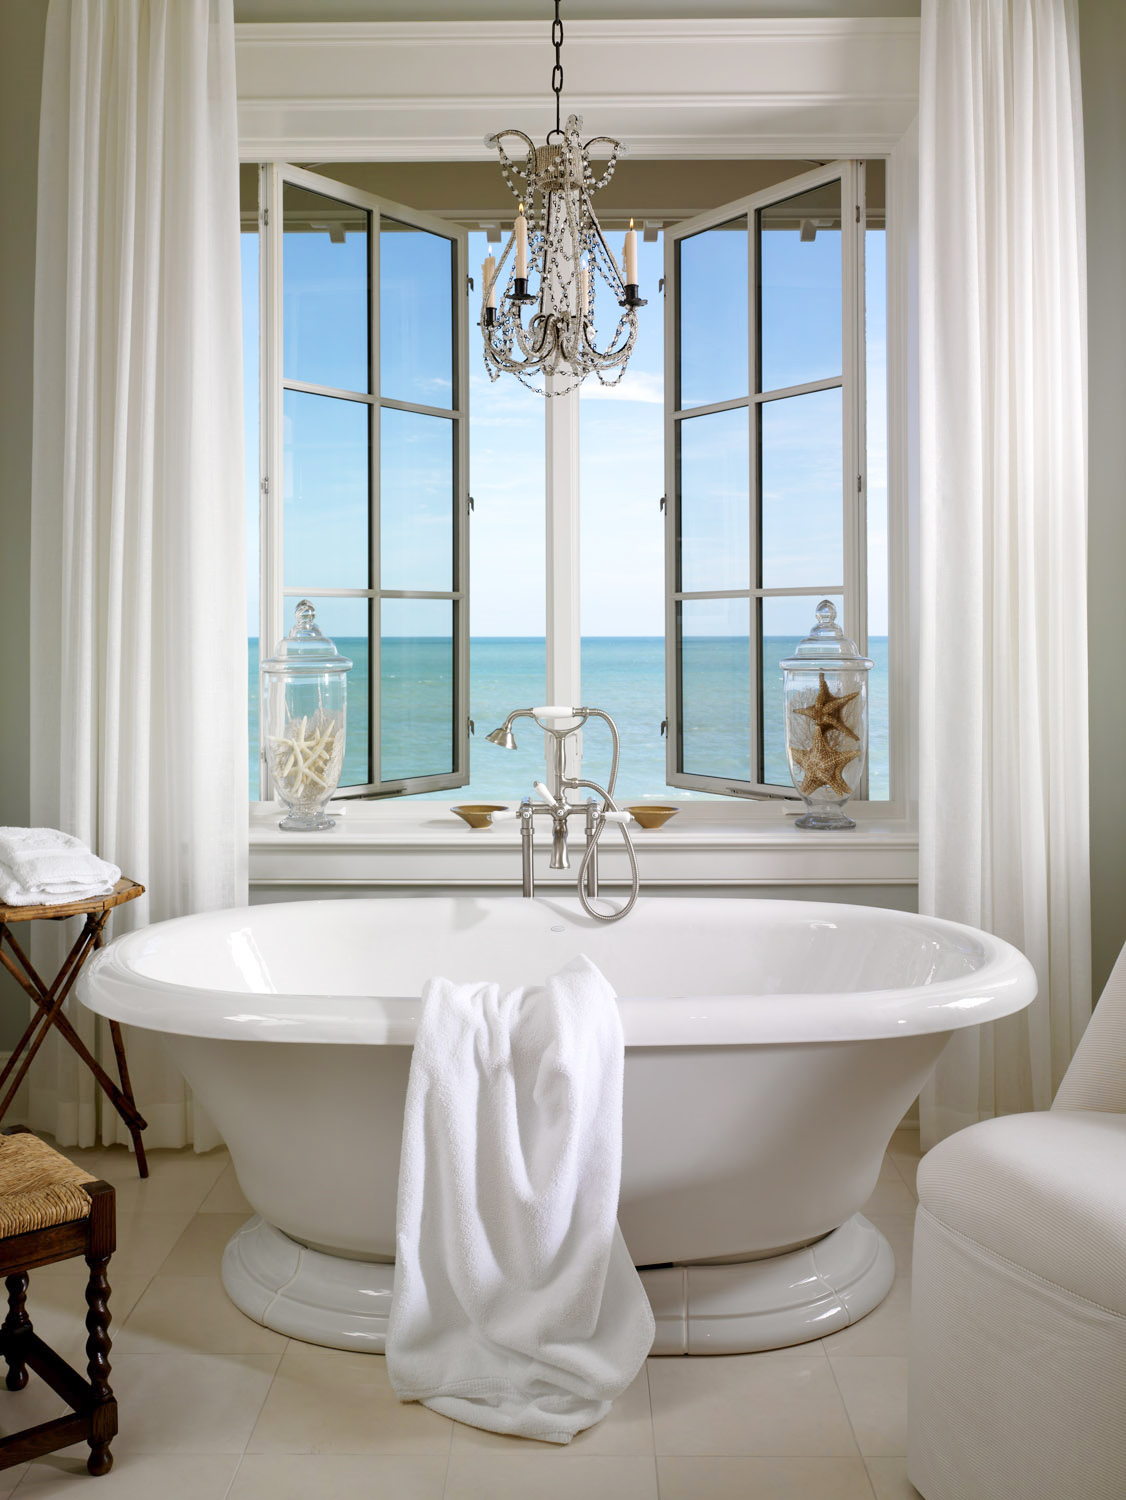 Freestading Tub with an Ocean View by Jill Shevlin Design